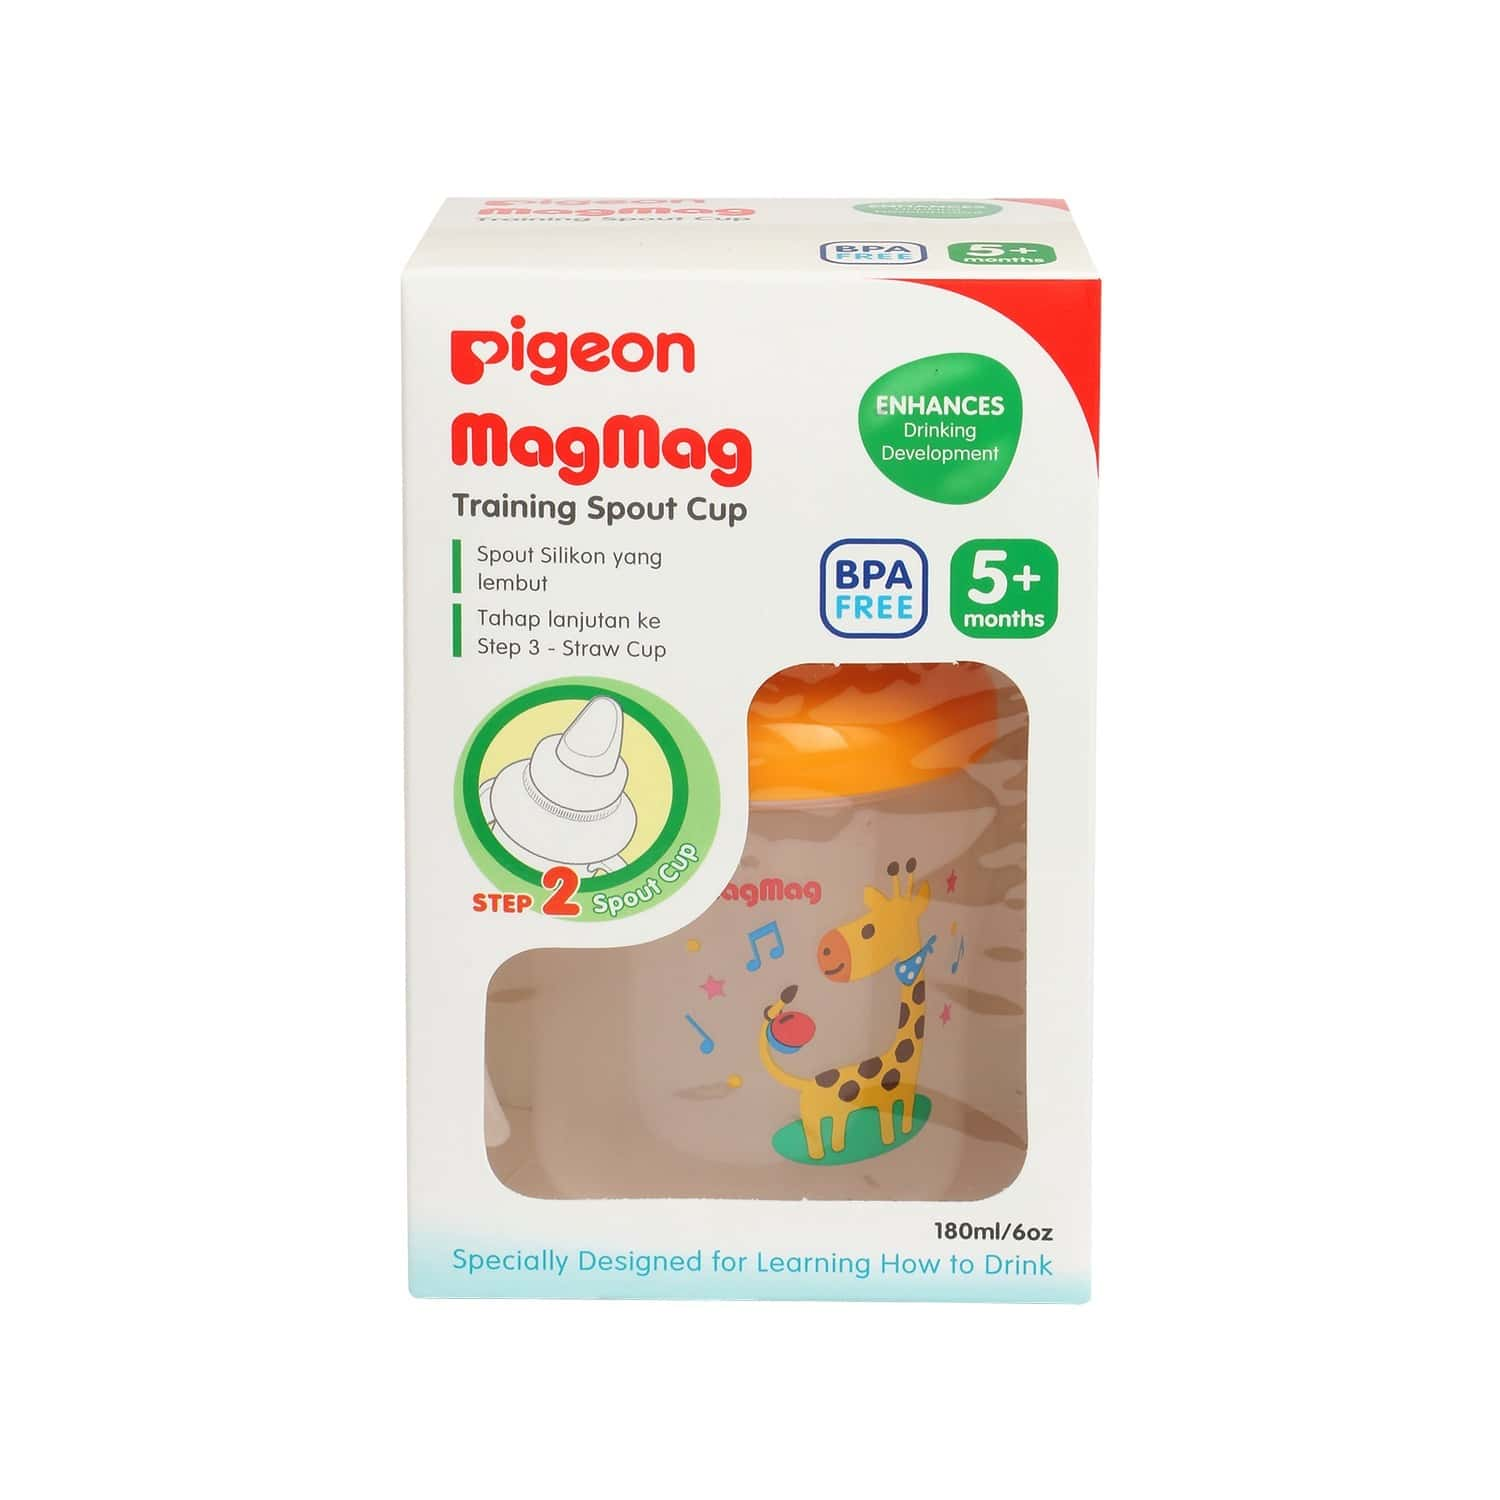 Pigeon Magmag Training Spout Cup (d-802n)